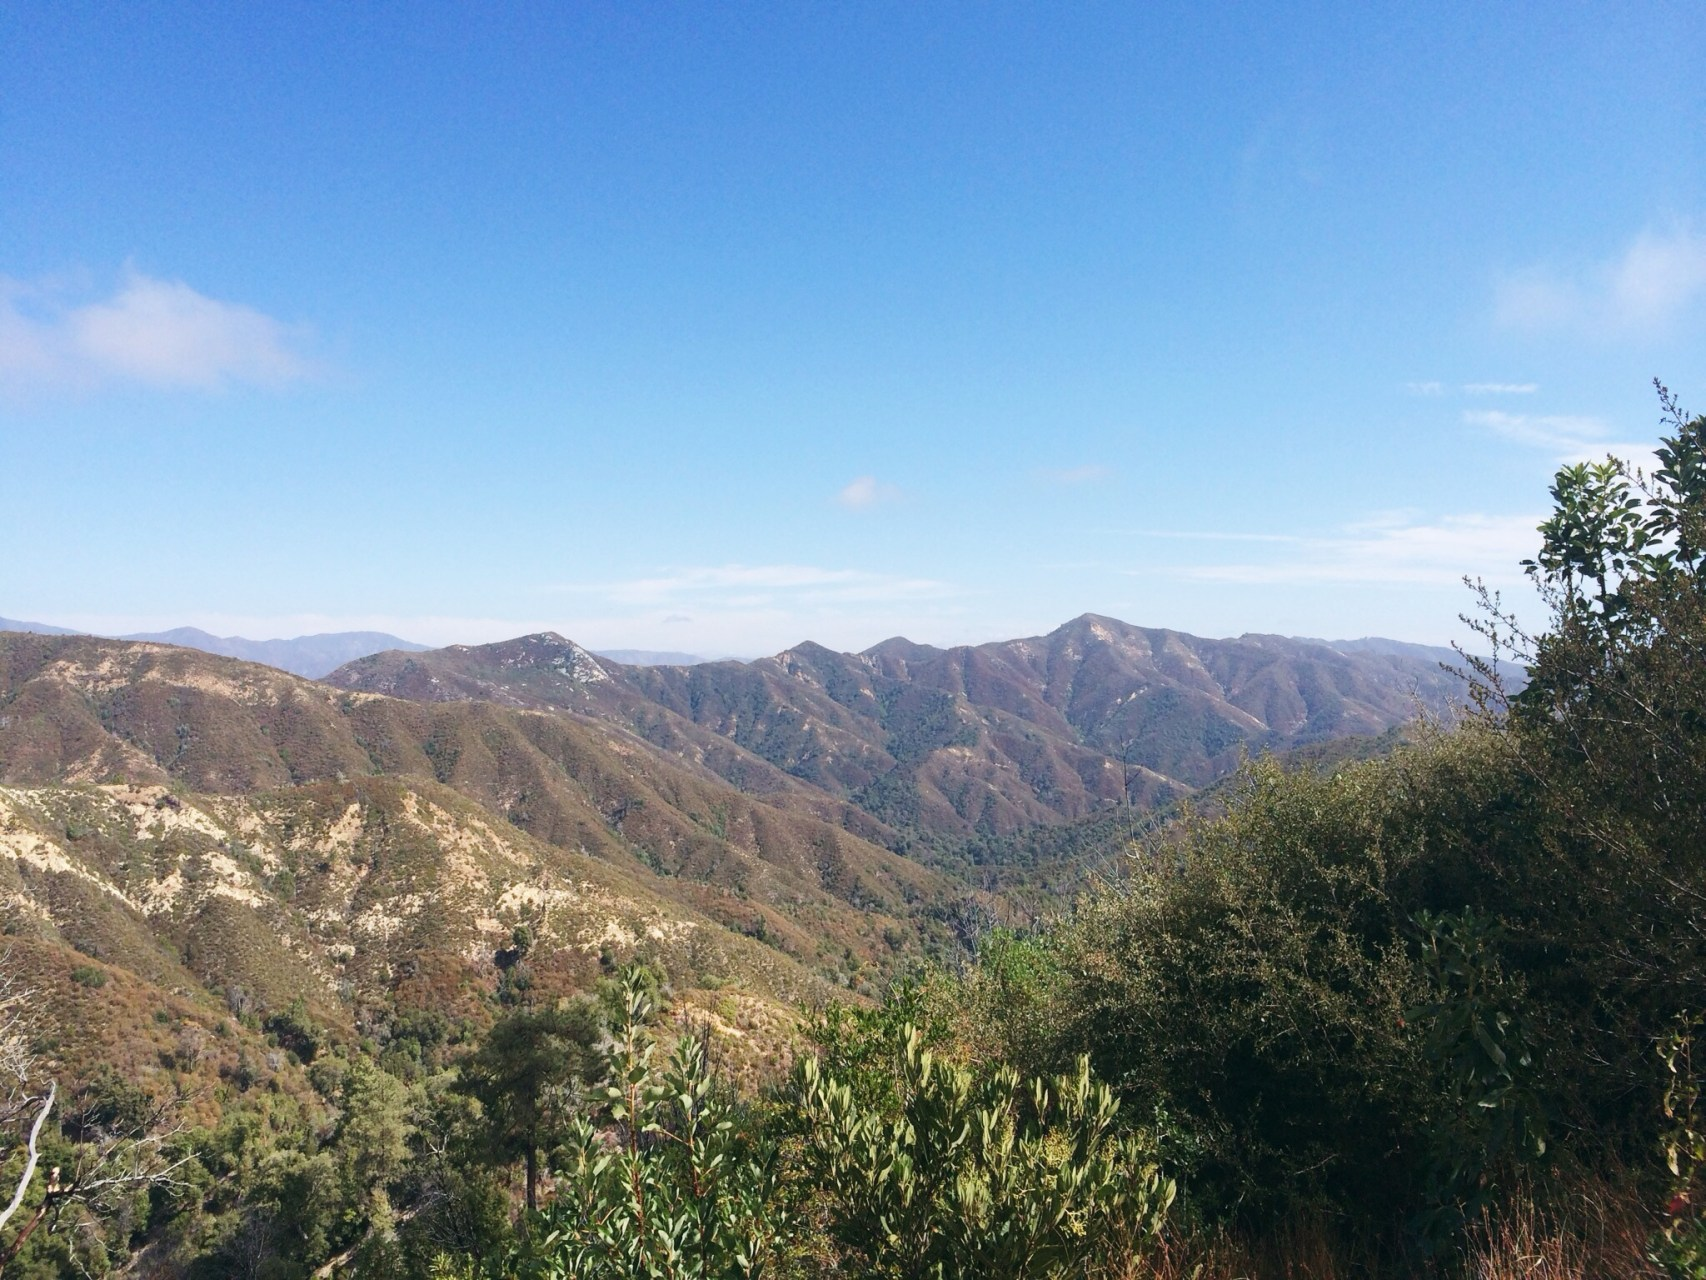 The views up here are amazing. Reminds me of the opening credits of M*A*S*H